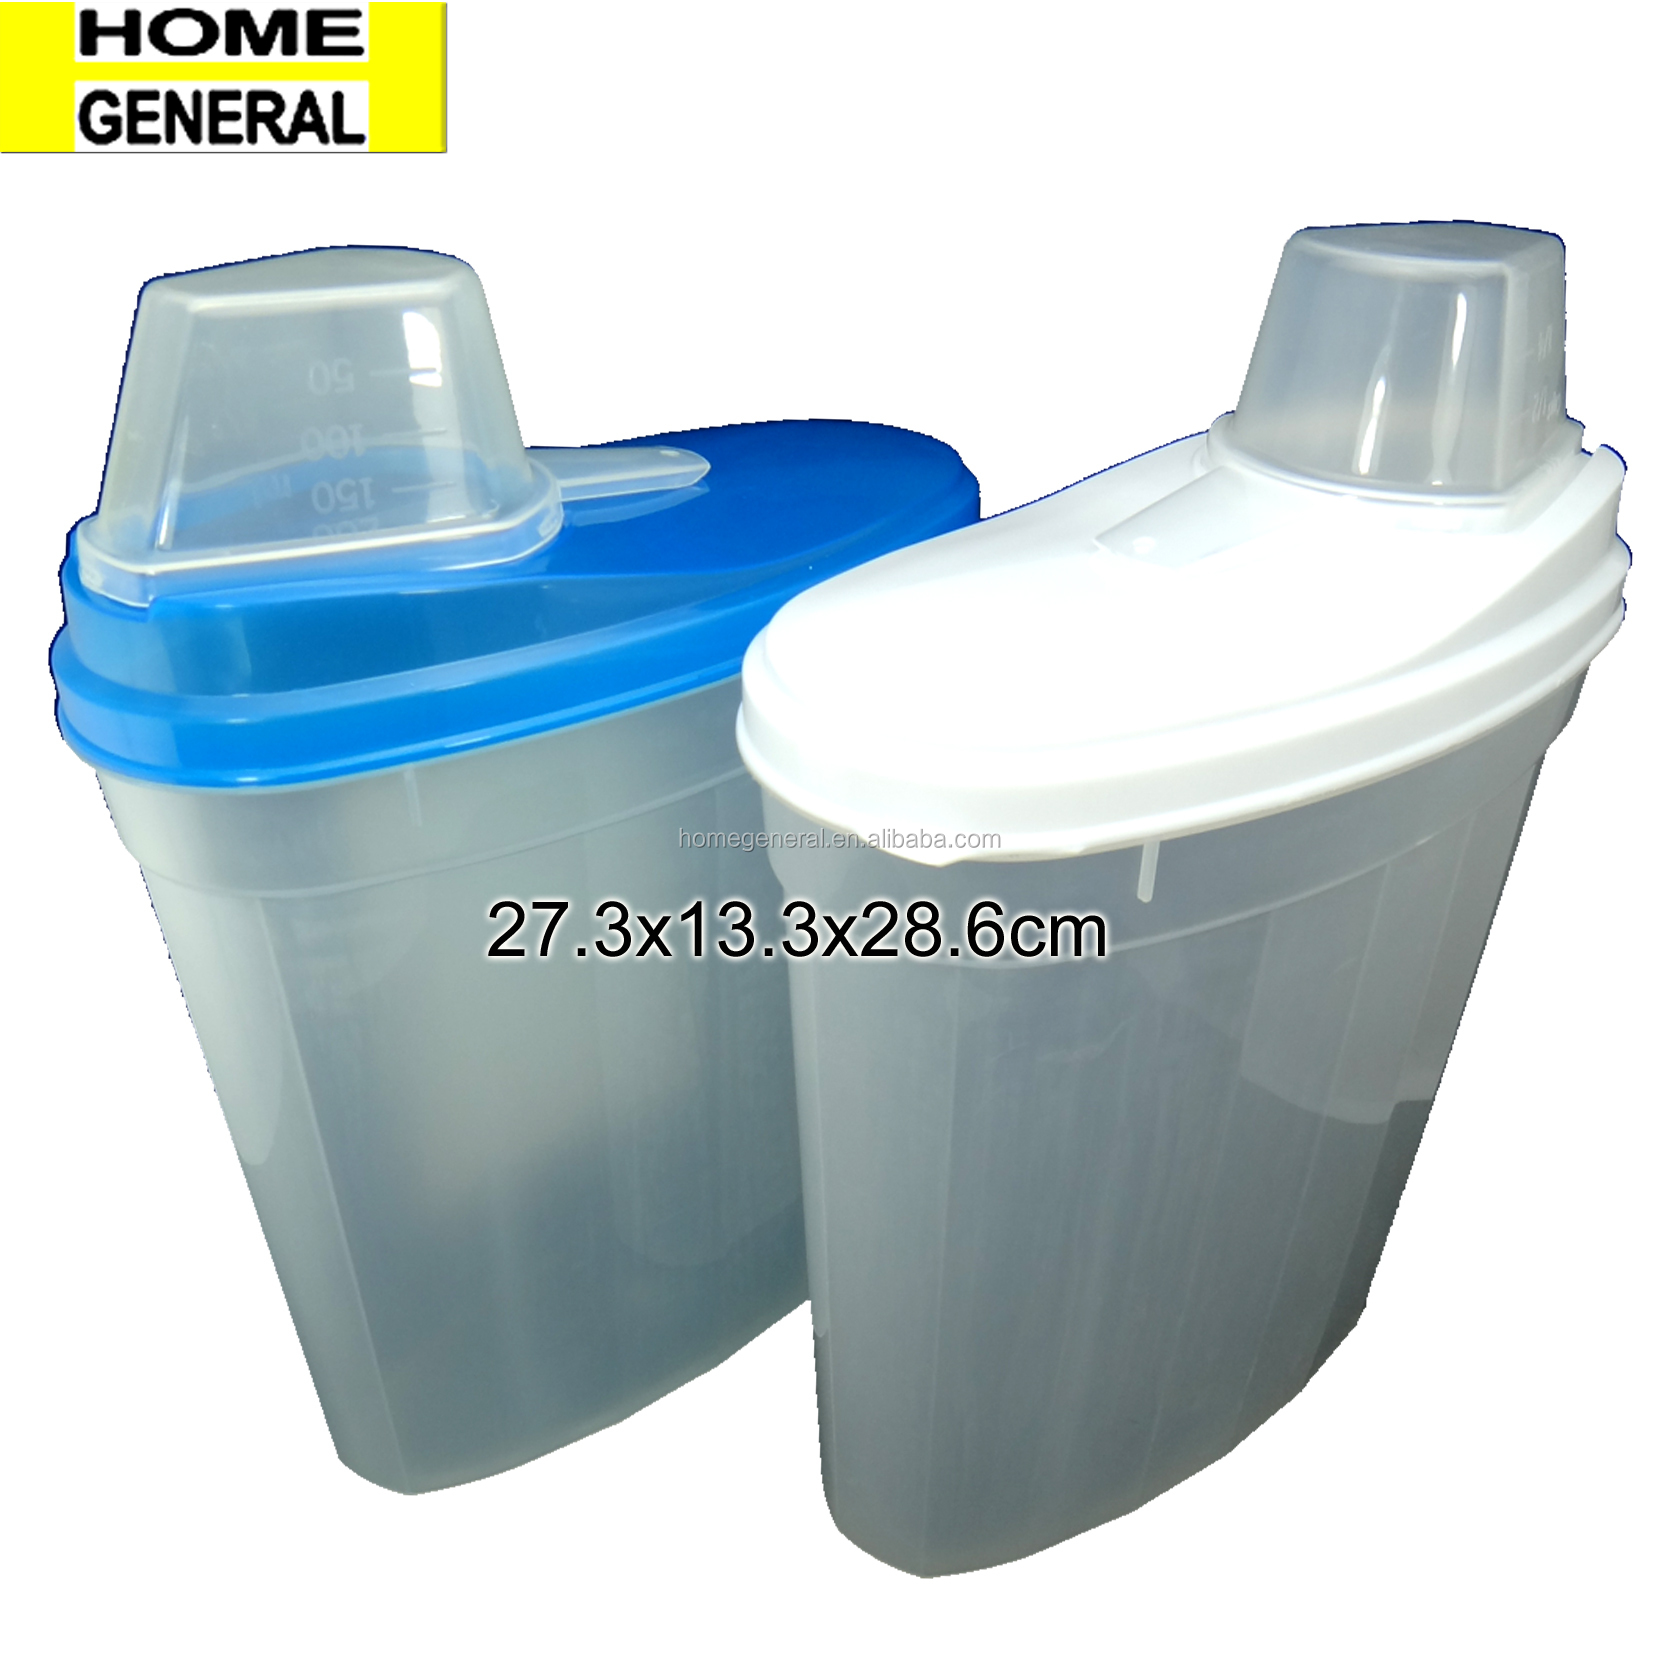 STORAGE GENERAL PLASTIC STORAGE CONTAINER WITH LID